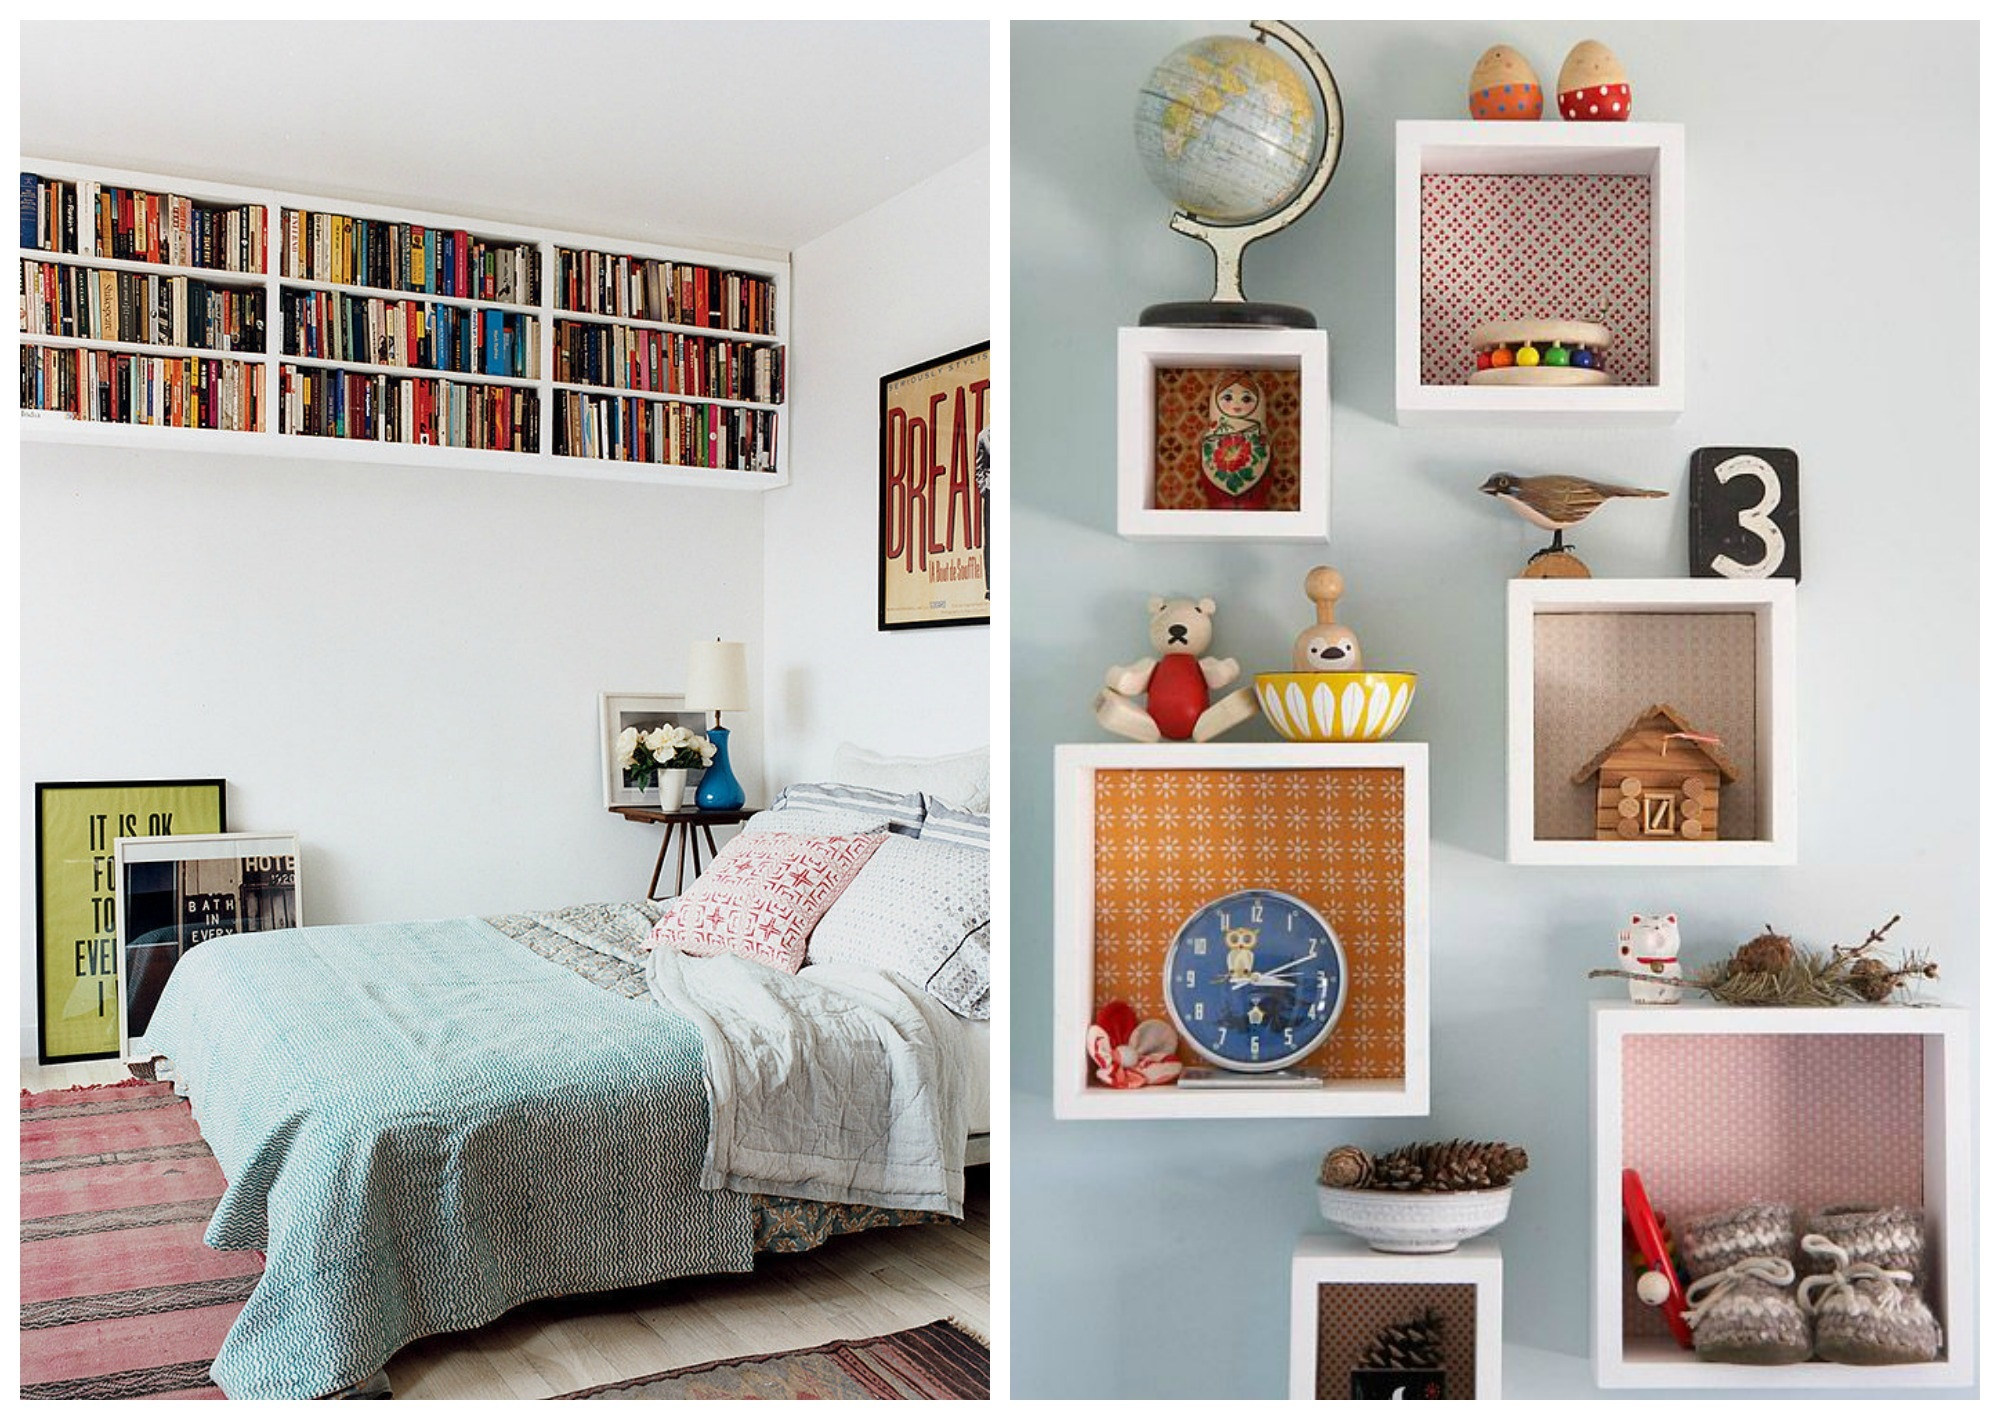 Bedroom Hacks To Make The Most Out Of Your Small Space